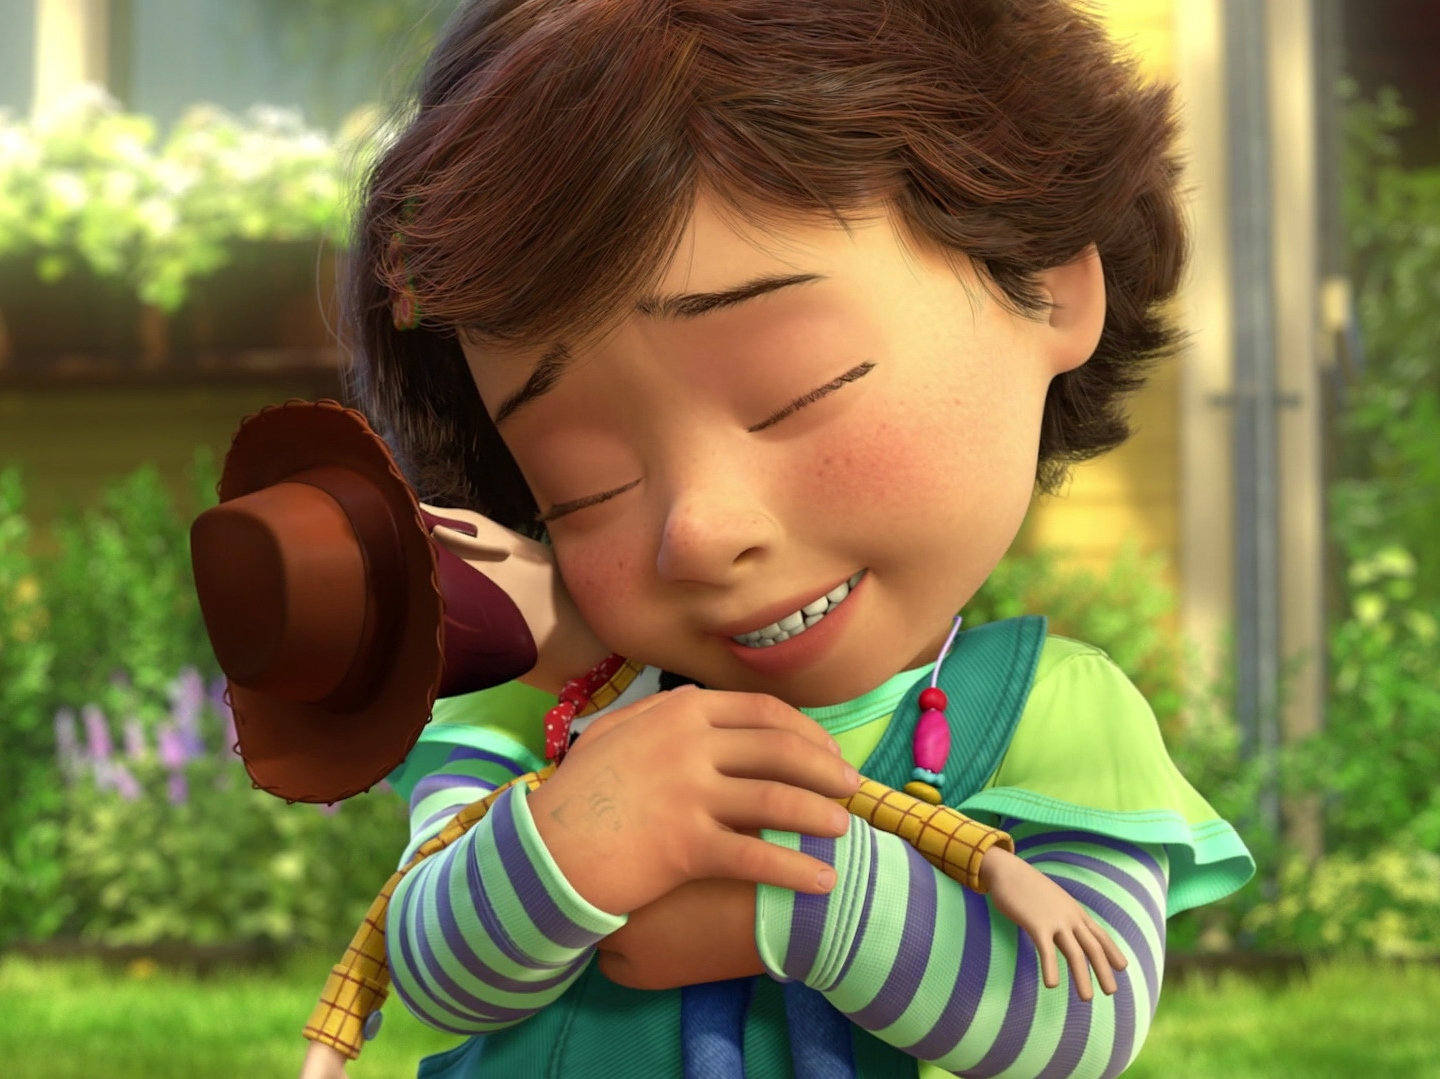 If Bonnie (Toy Story 3) was a Young Heroine of Disney ...